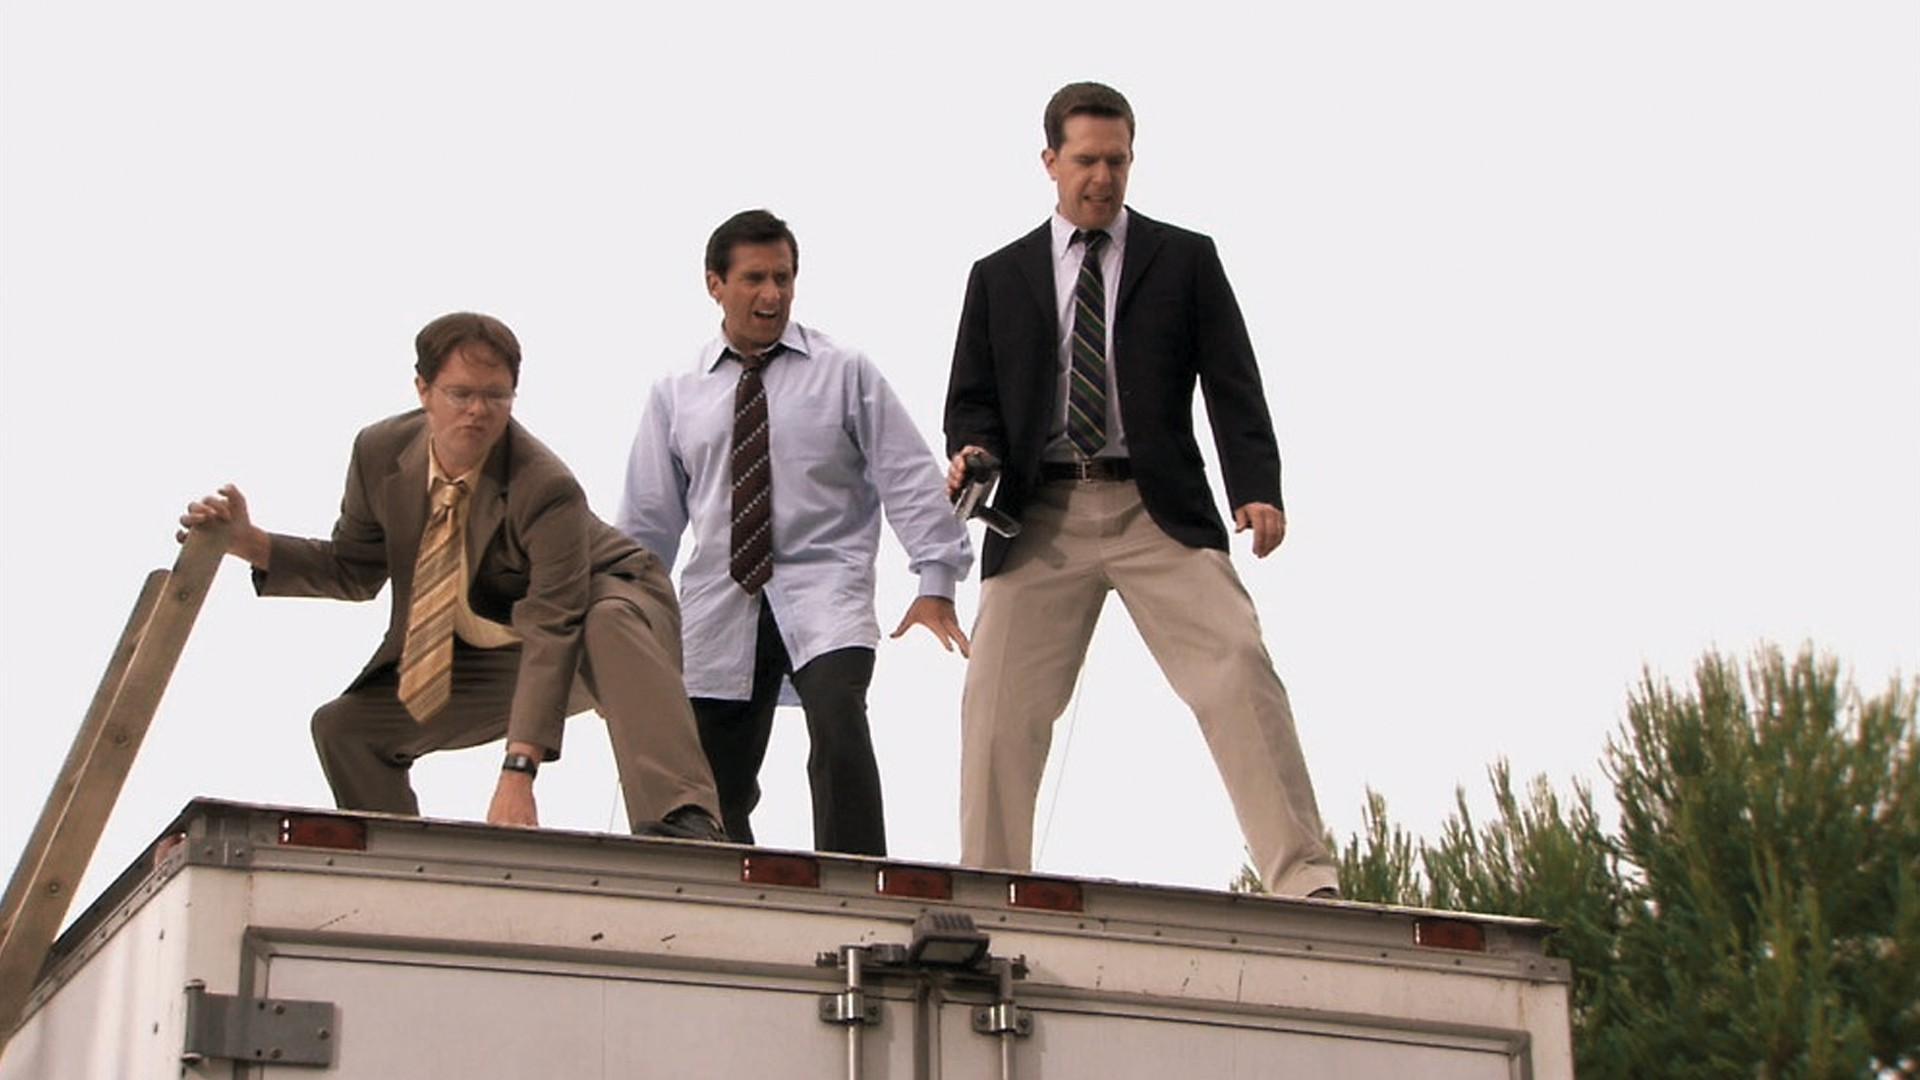 How The Office Ruined Parkour